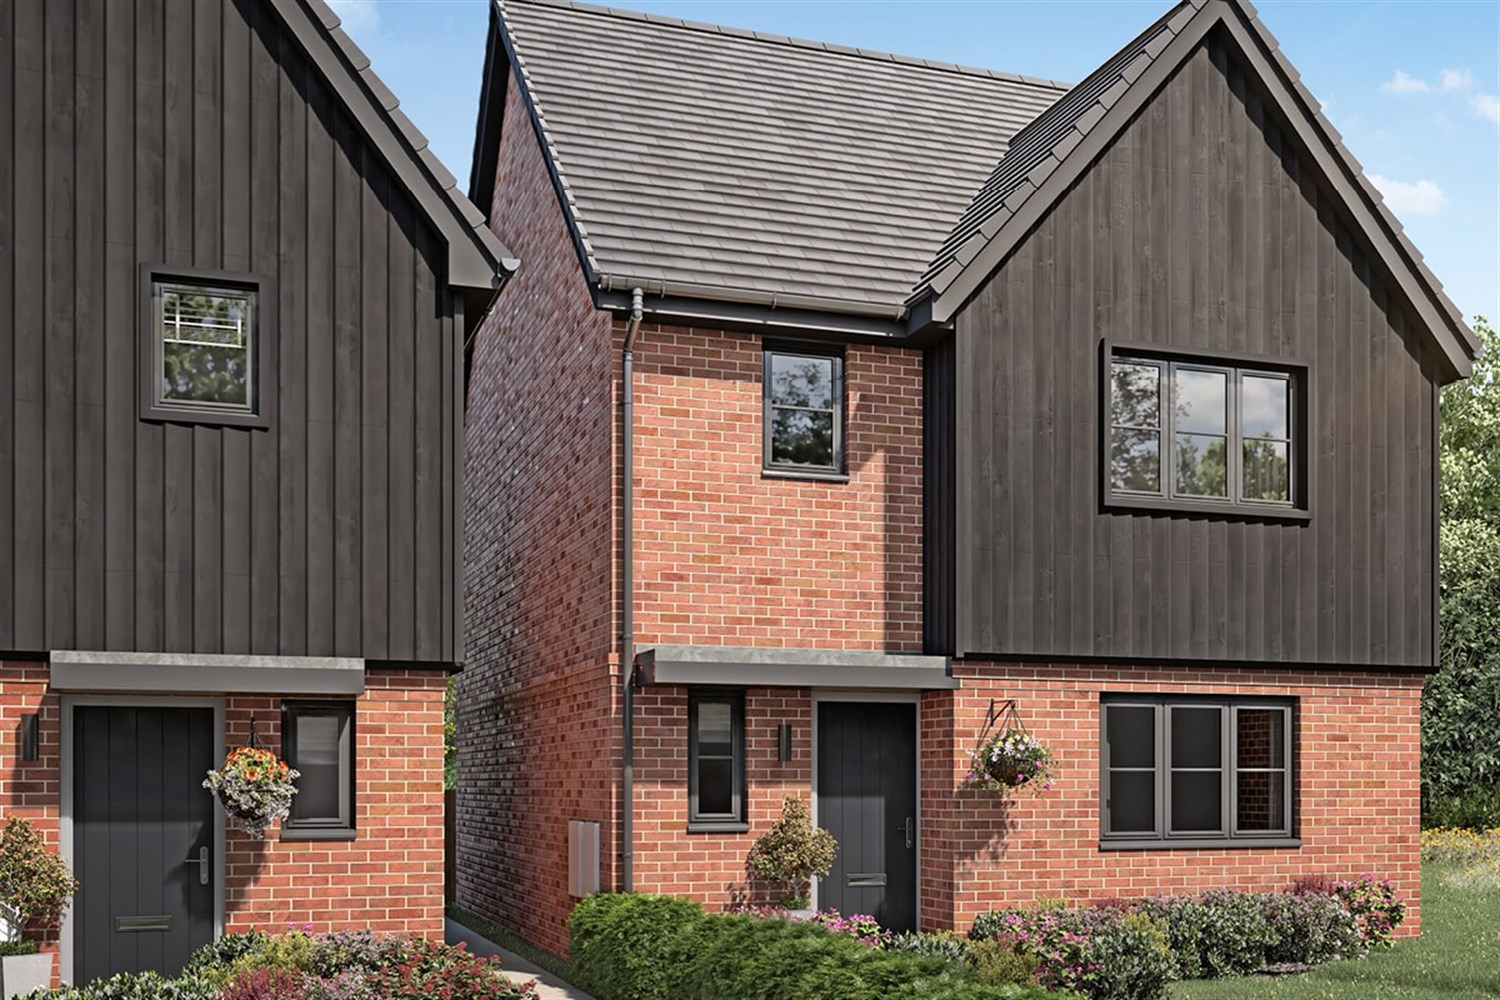 The Seaton at Waterman's Gate - 3 bed detached, Arborfield Green, RG2 9LN